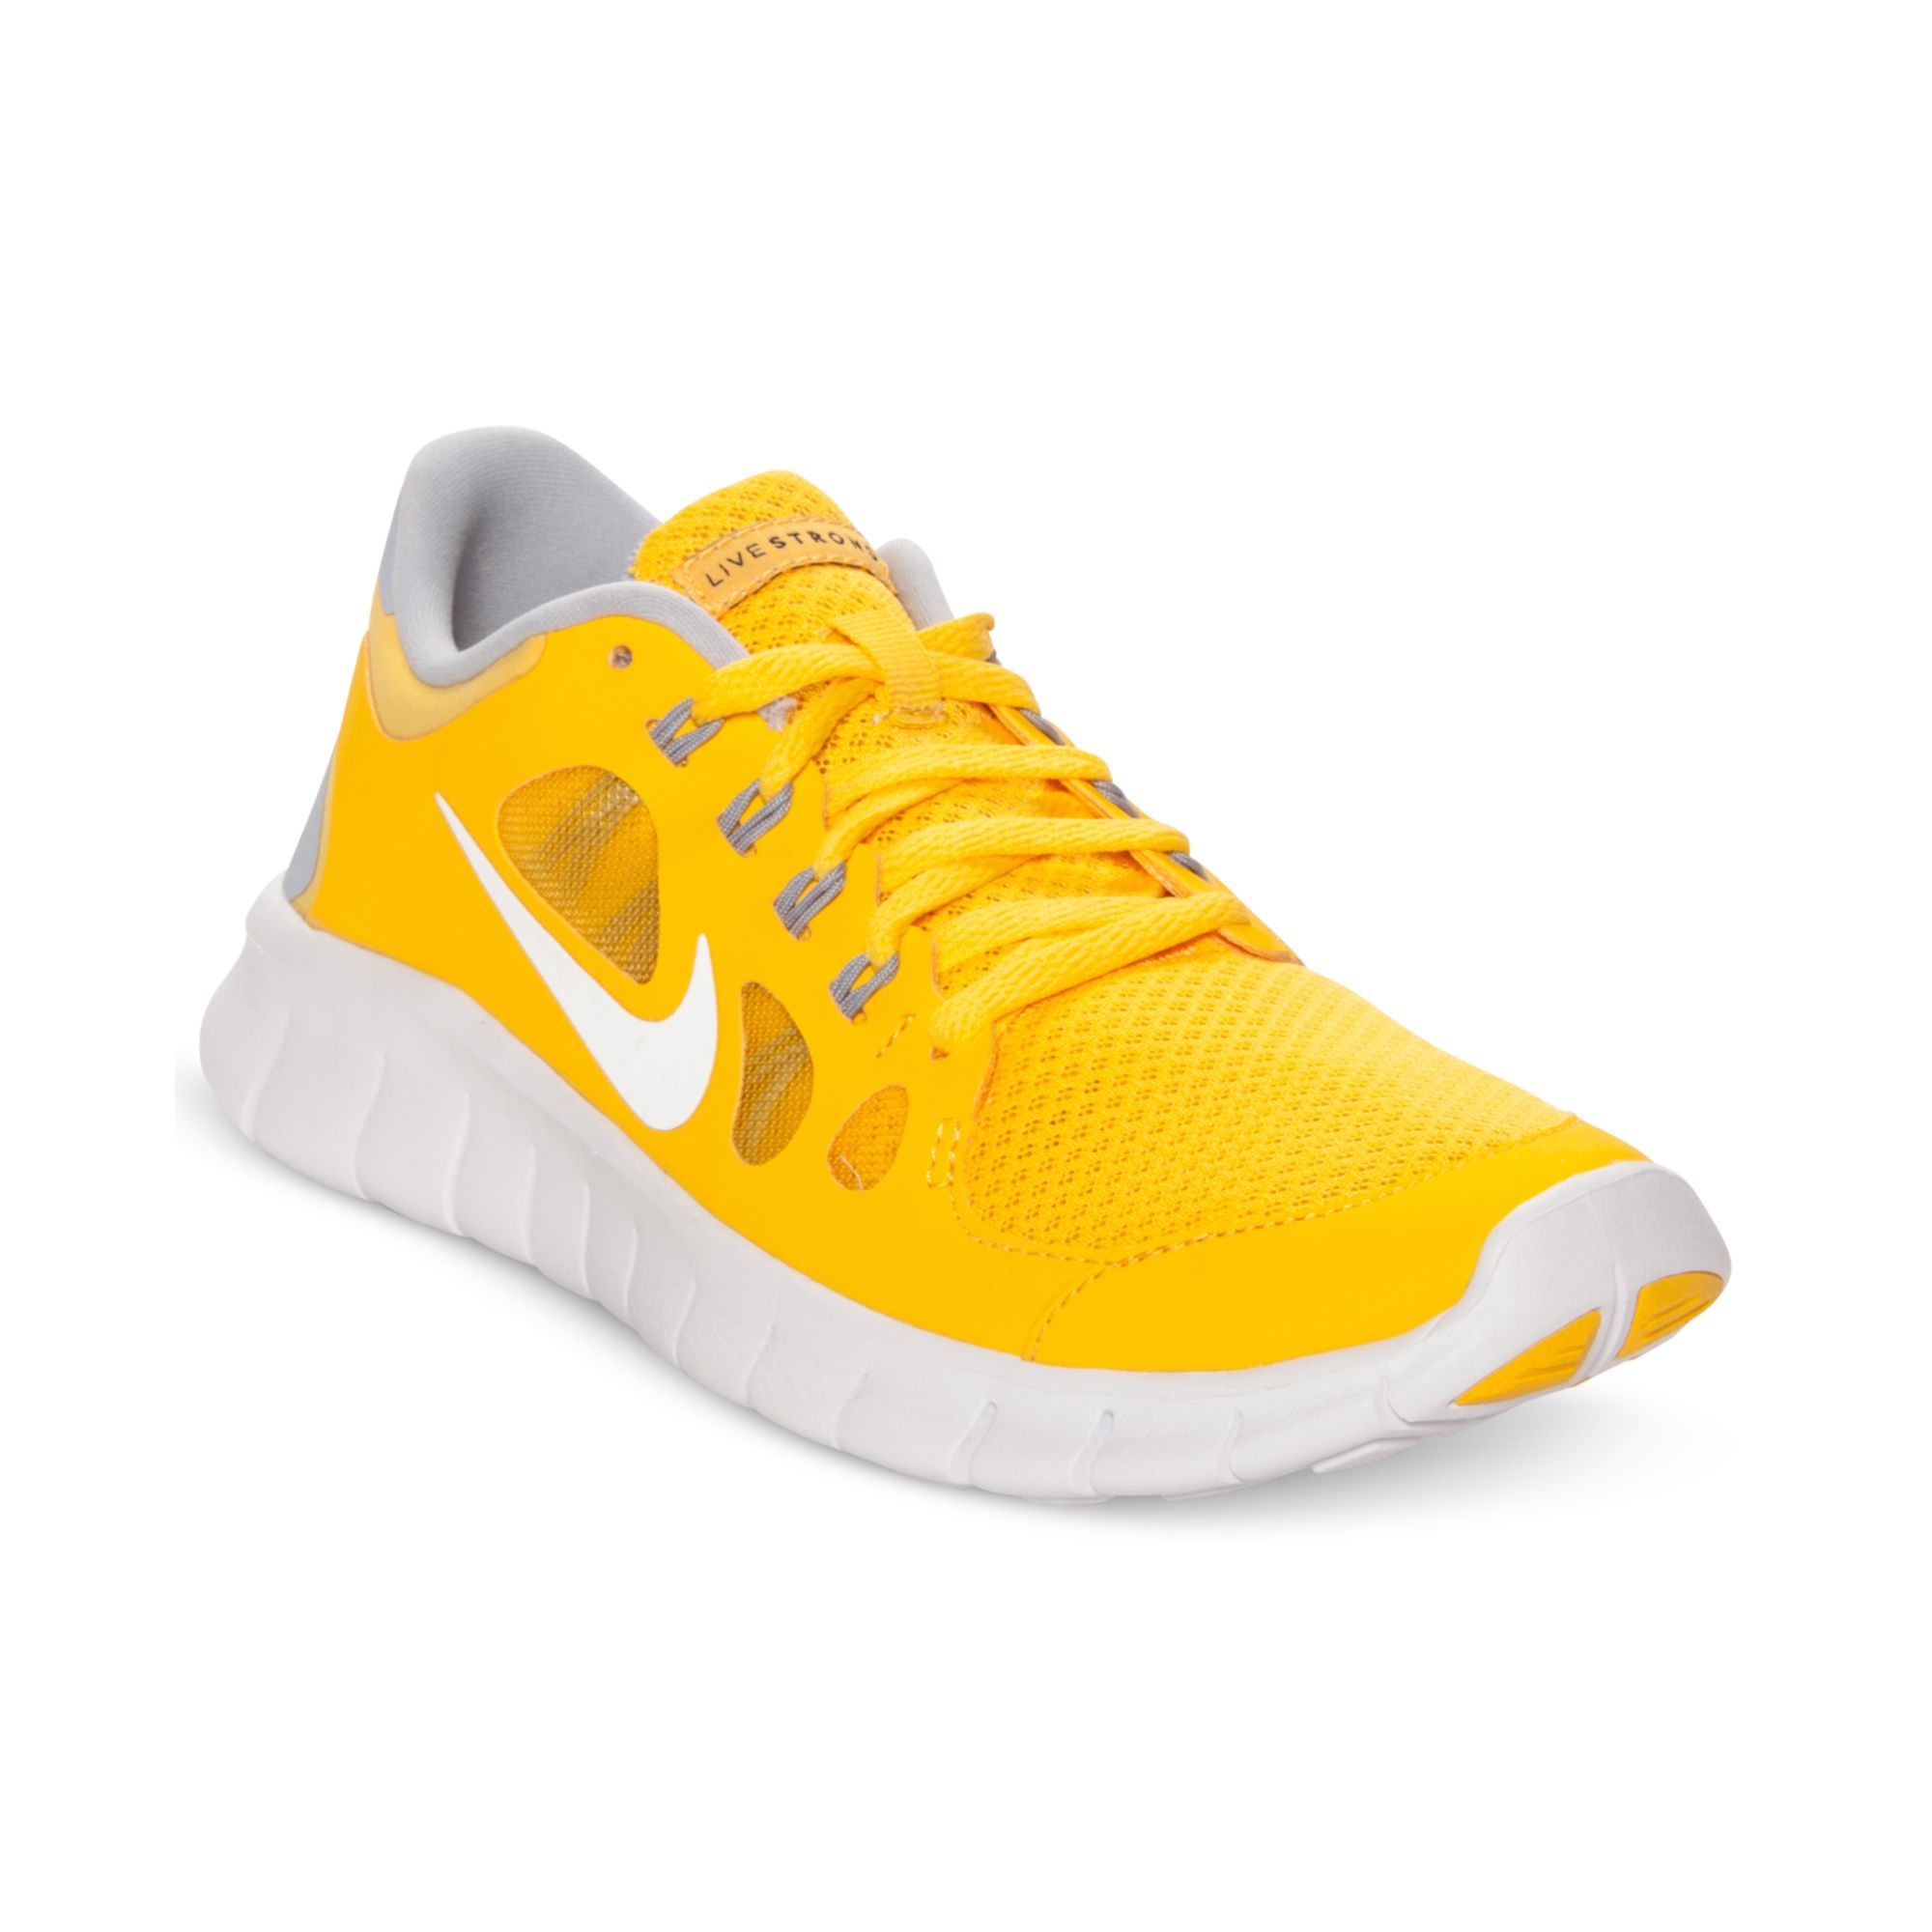 6583b27573b09 Lyst - Nike Girls Free Run 5 Laf Running Sneakers in Yellow